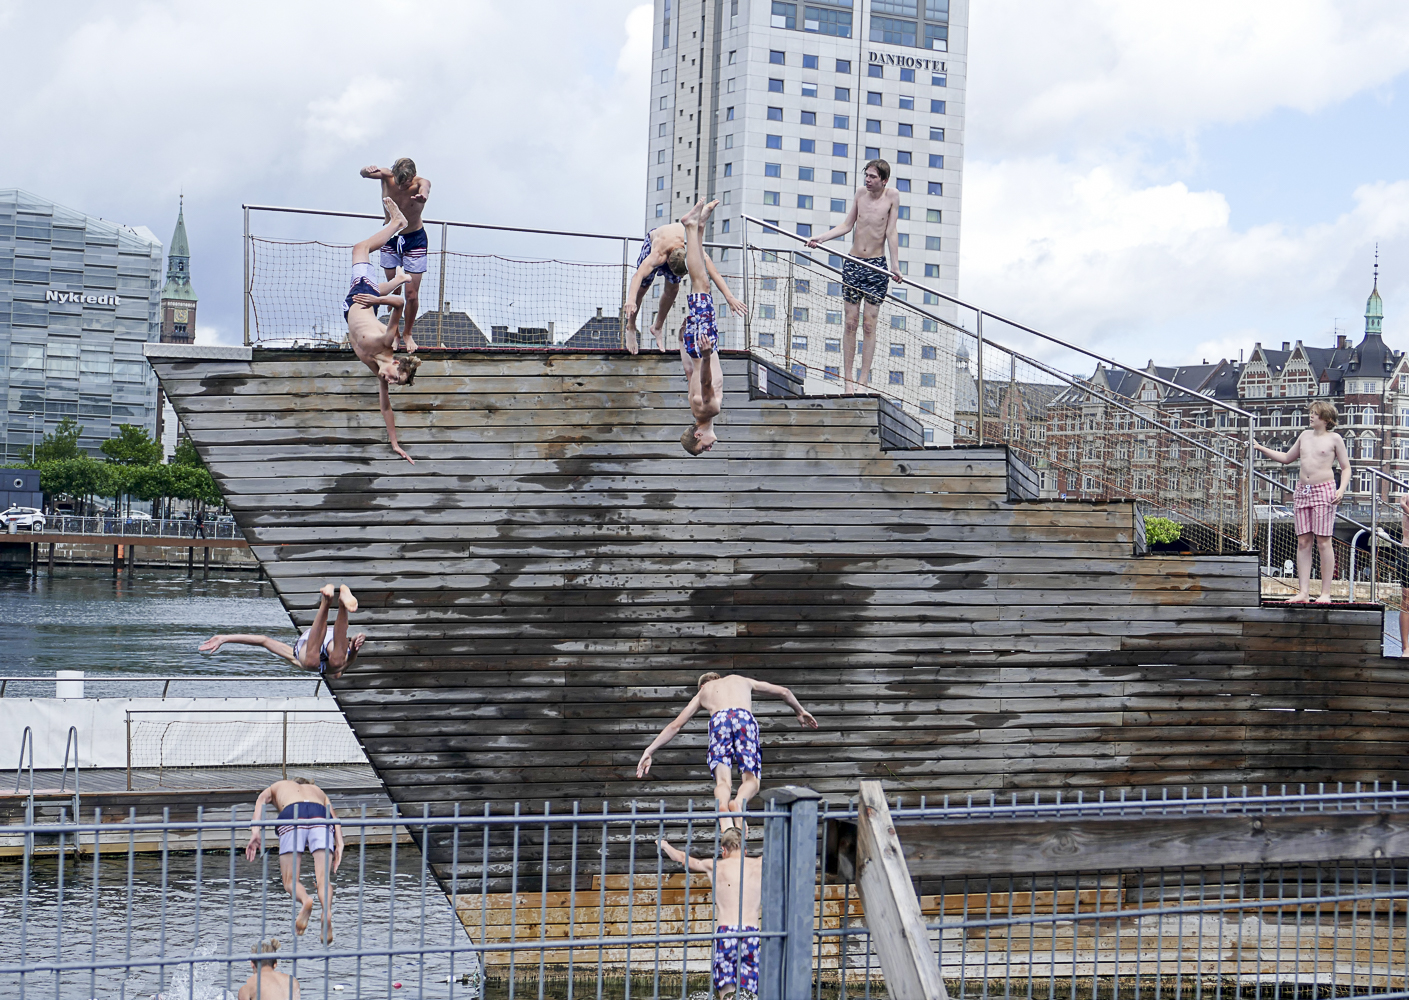 Sequence photo of two kids diving simultaneously into the Havnebadet, a swimming pool which is part of the main waterway, the Copenhagen Havn